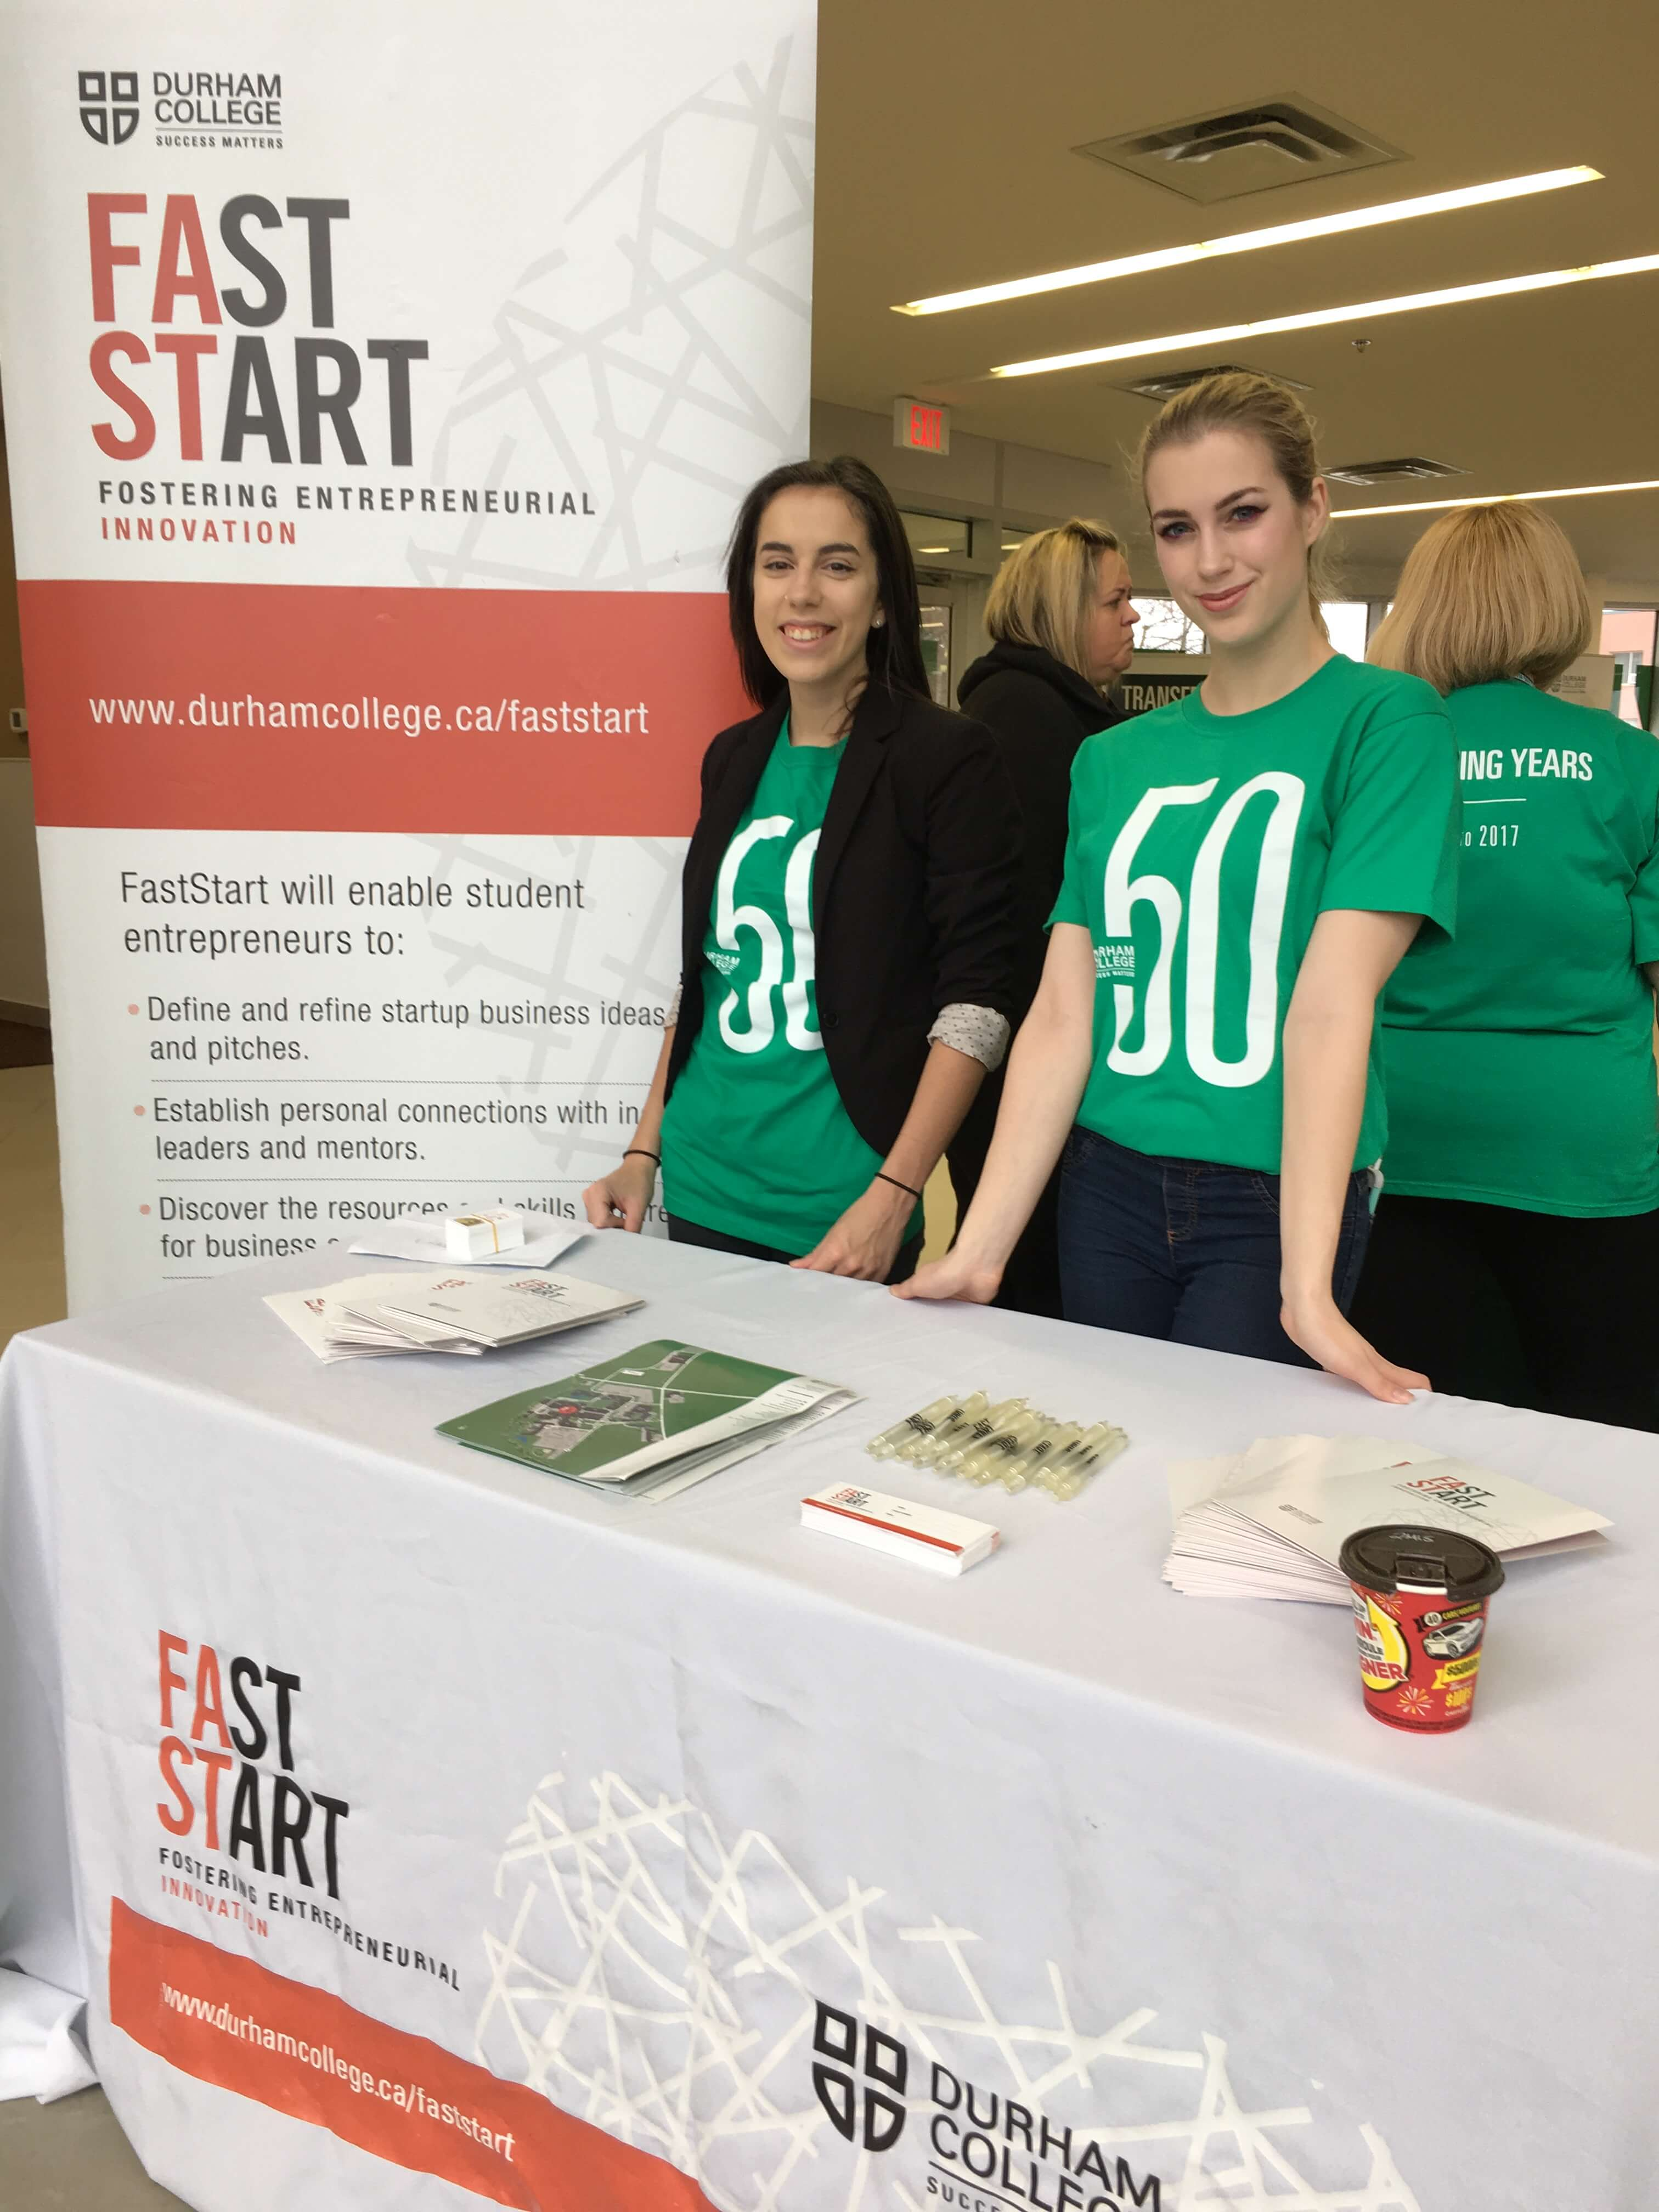 Fast start booth at spring open house